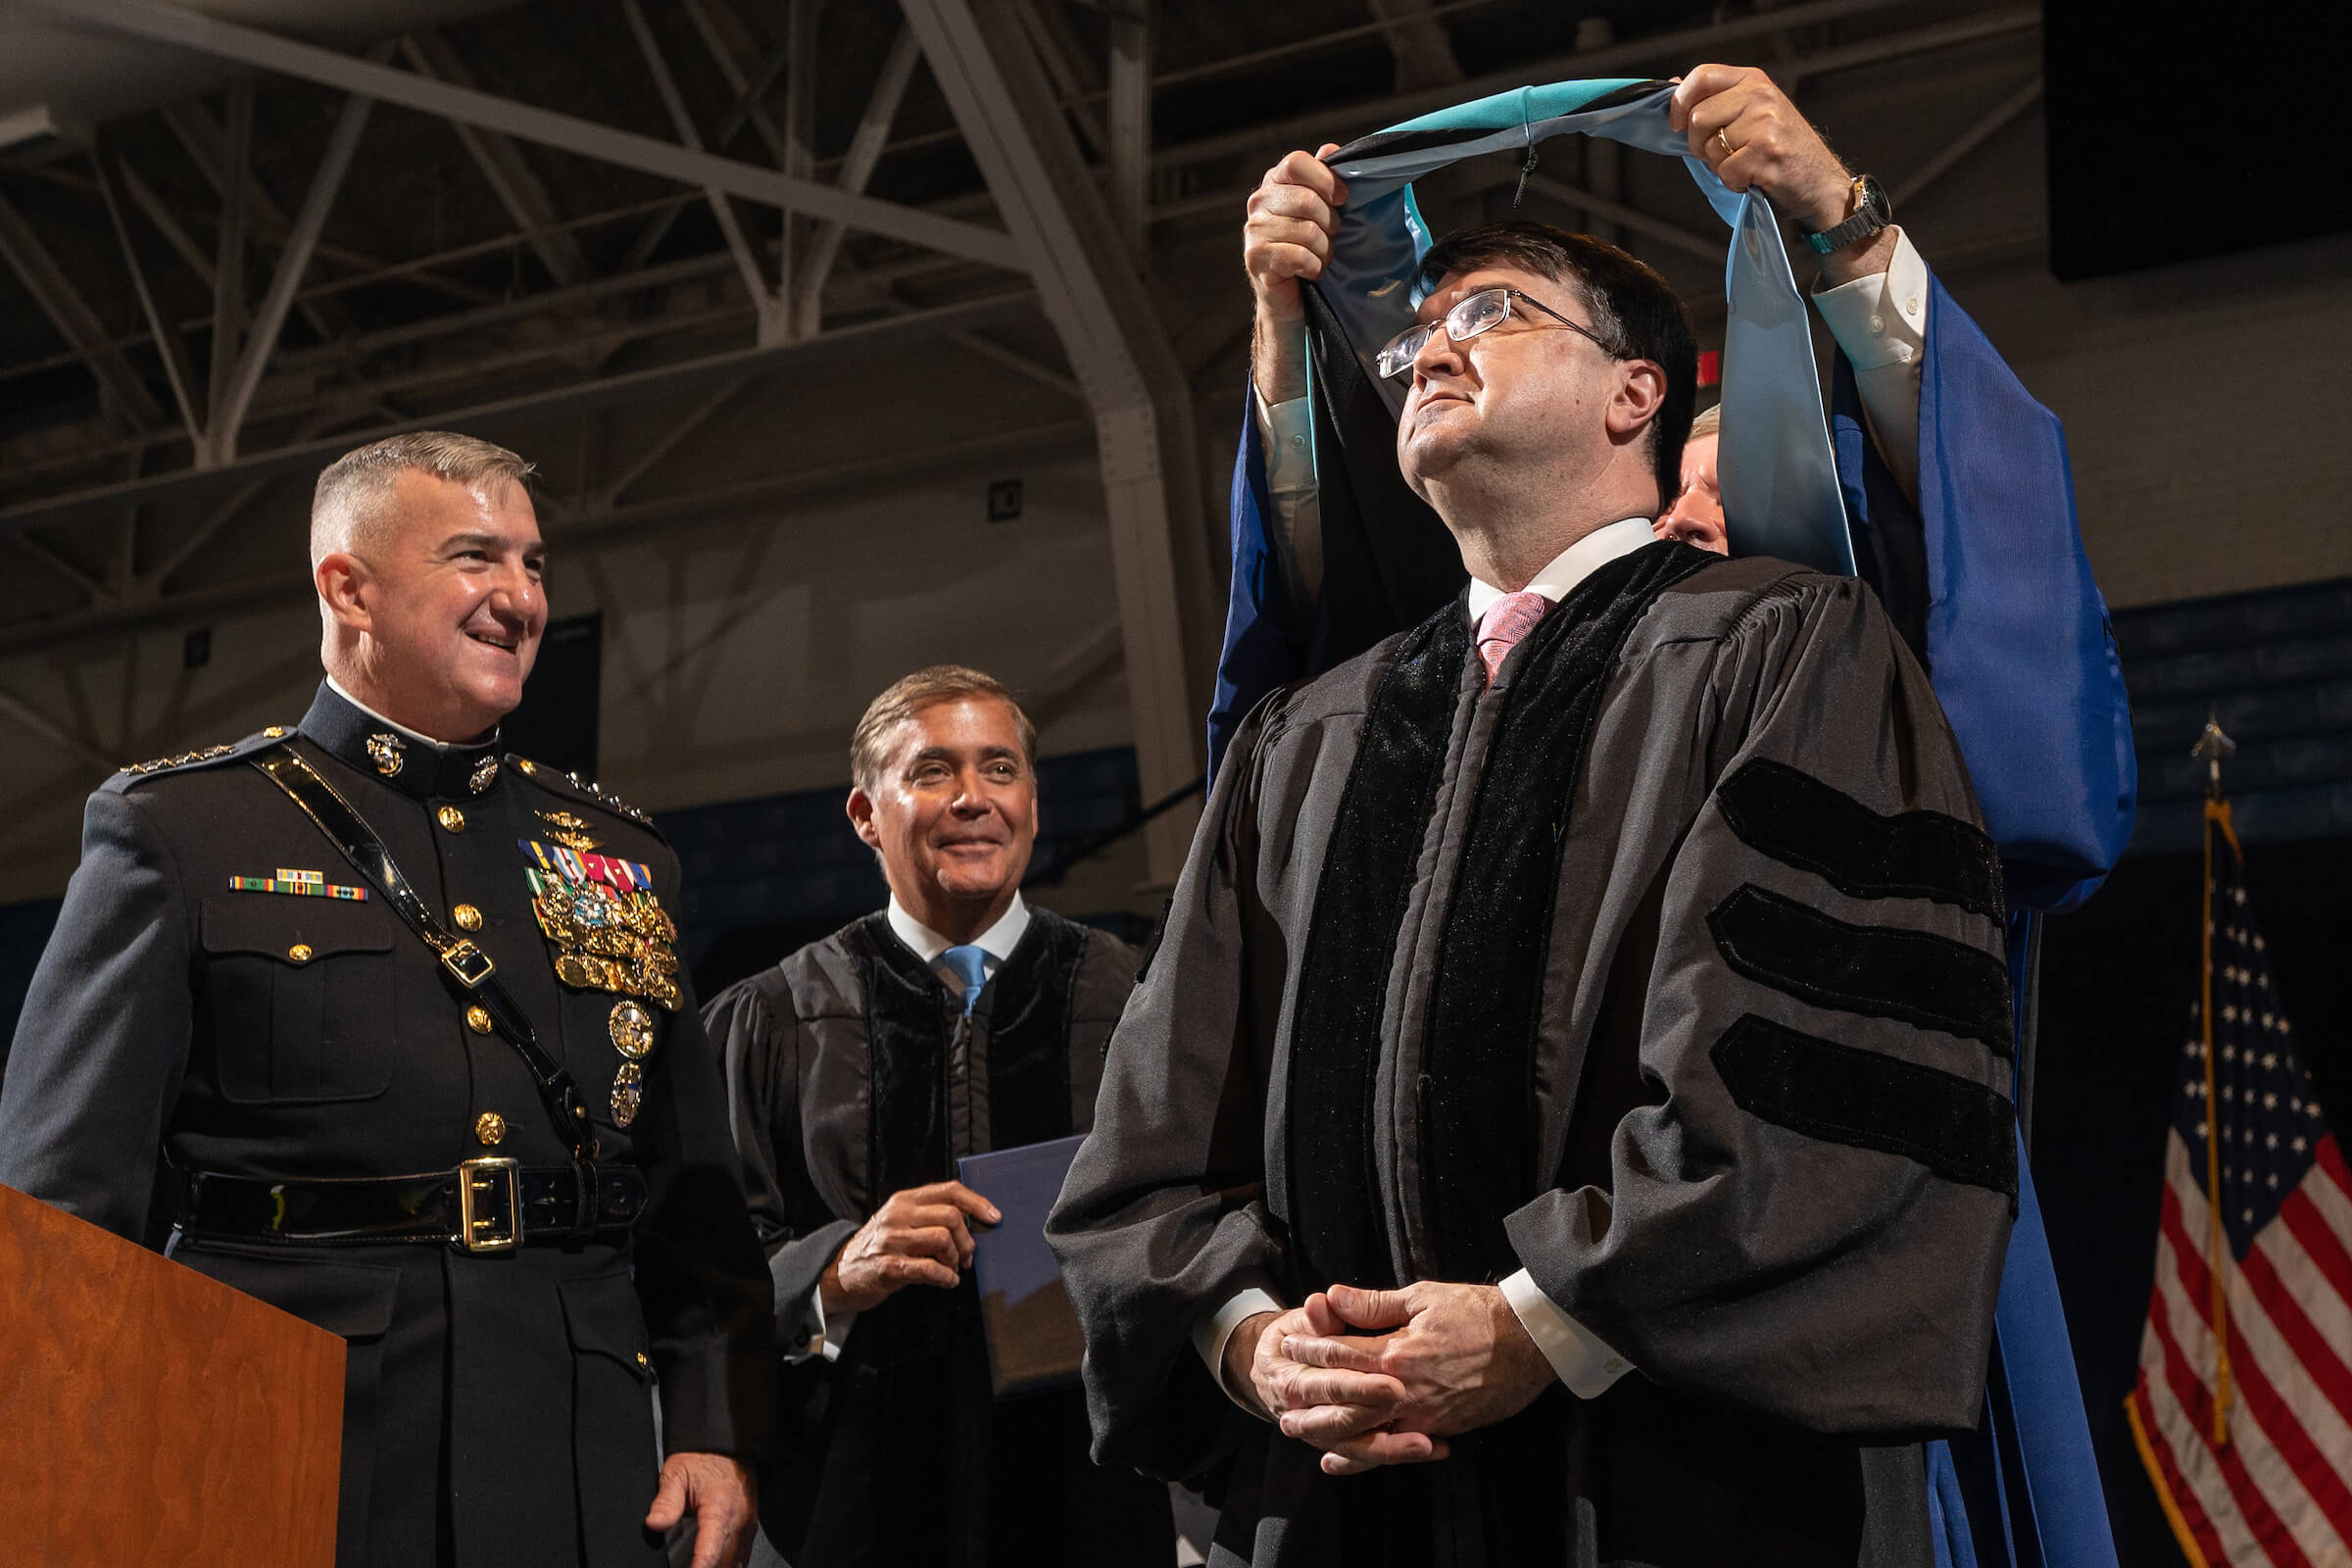 The Honorable Robert Wilkie, Secretary of Veterans Affairs, receives an honorary doctoral degree in public administration during The Citadel Graduate College commencement on May 4, 2019.